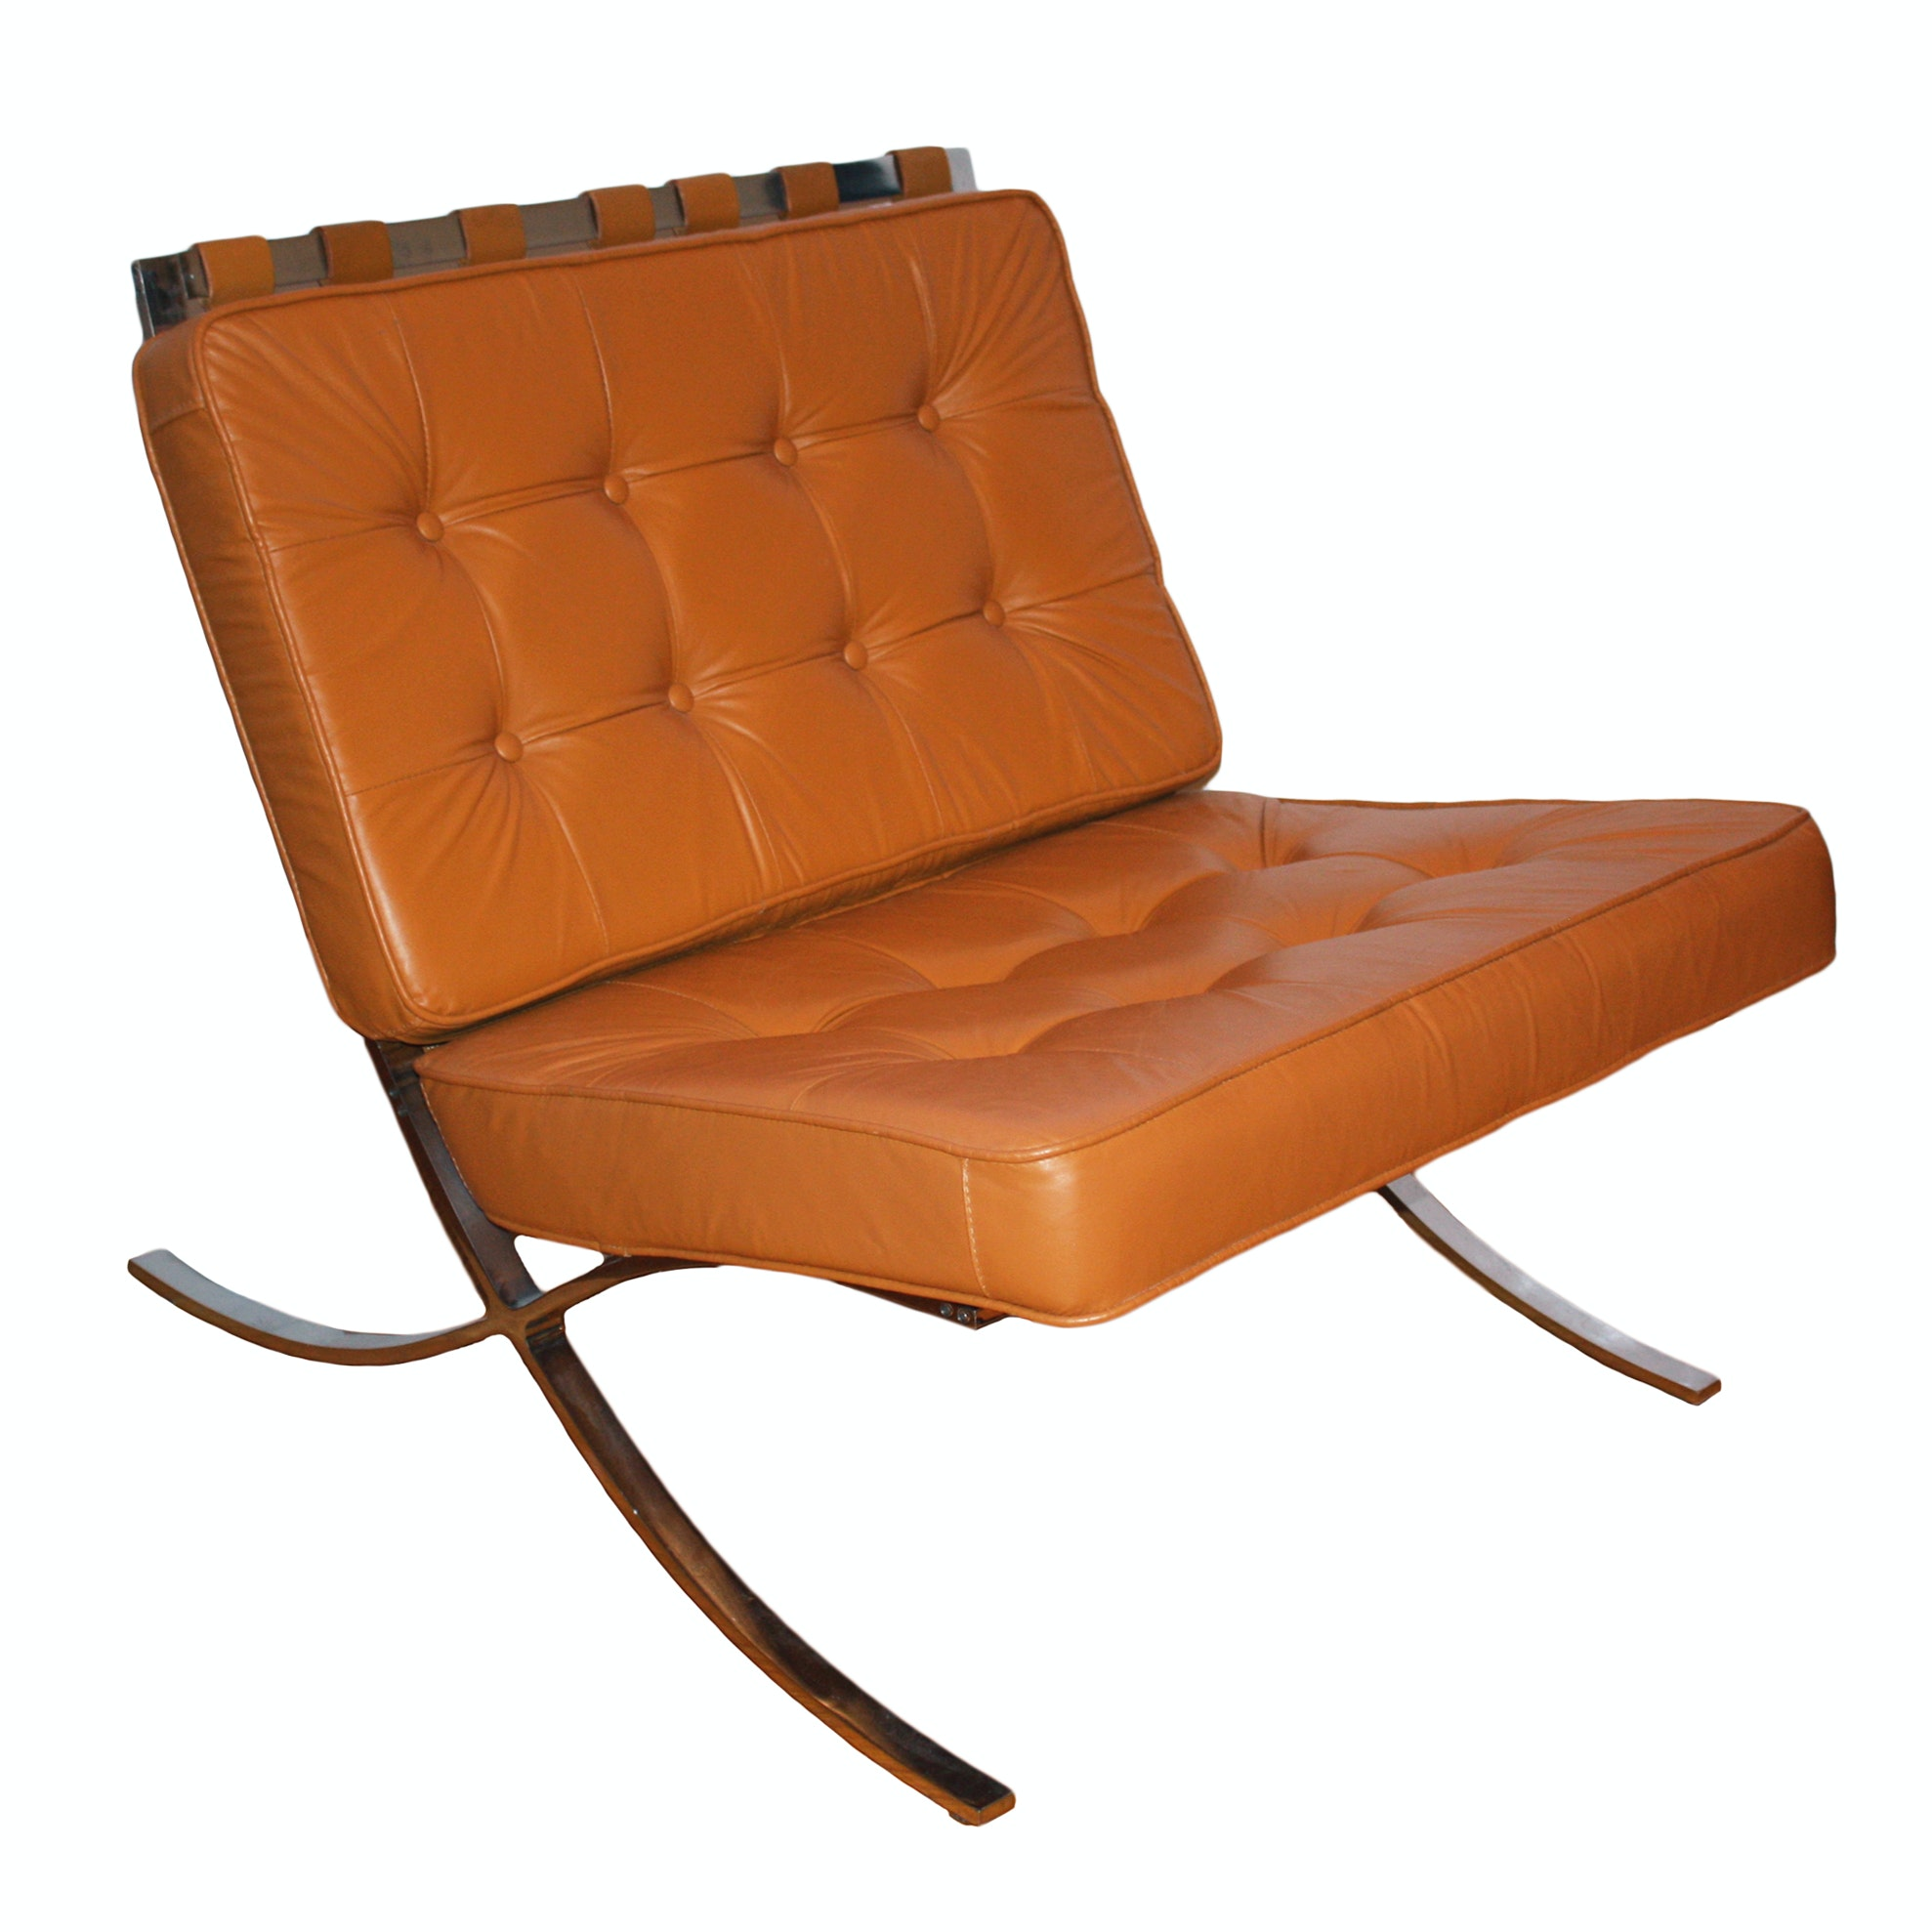 Barcelona-Style Lounge Chair